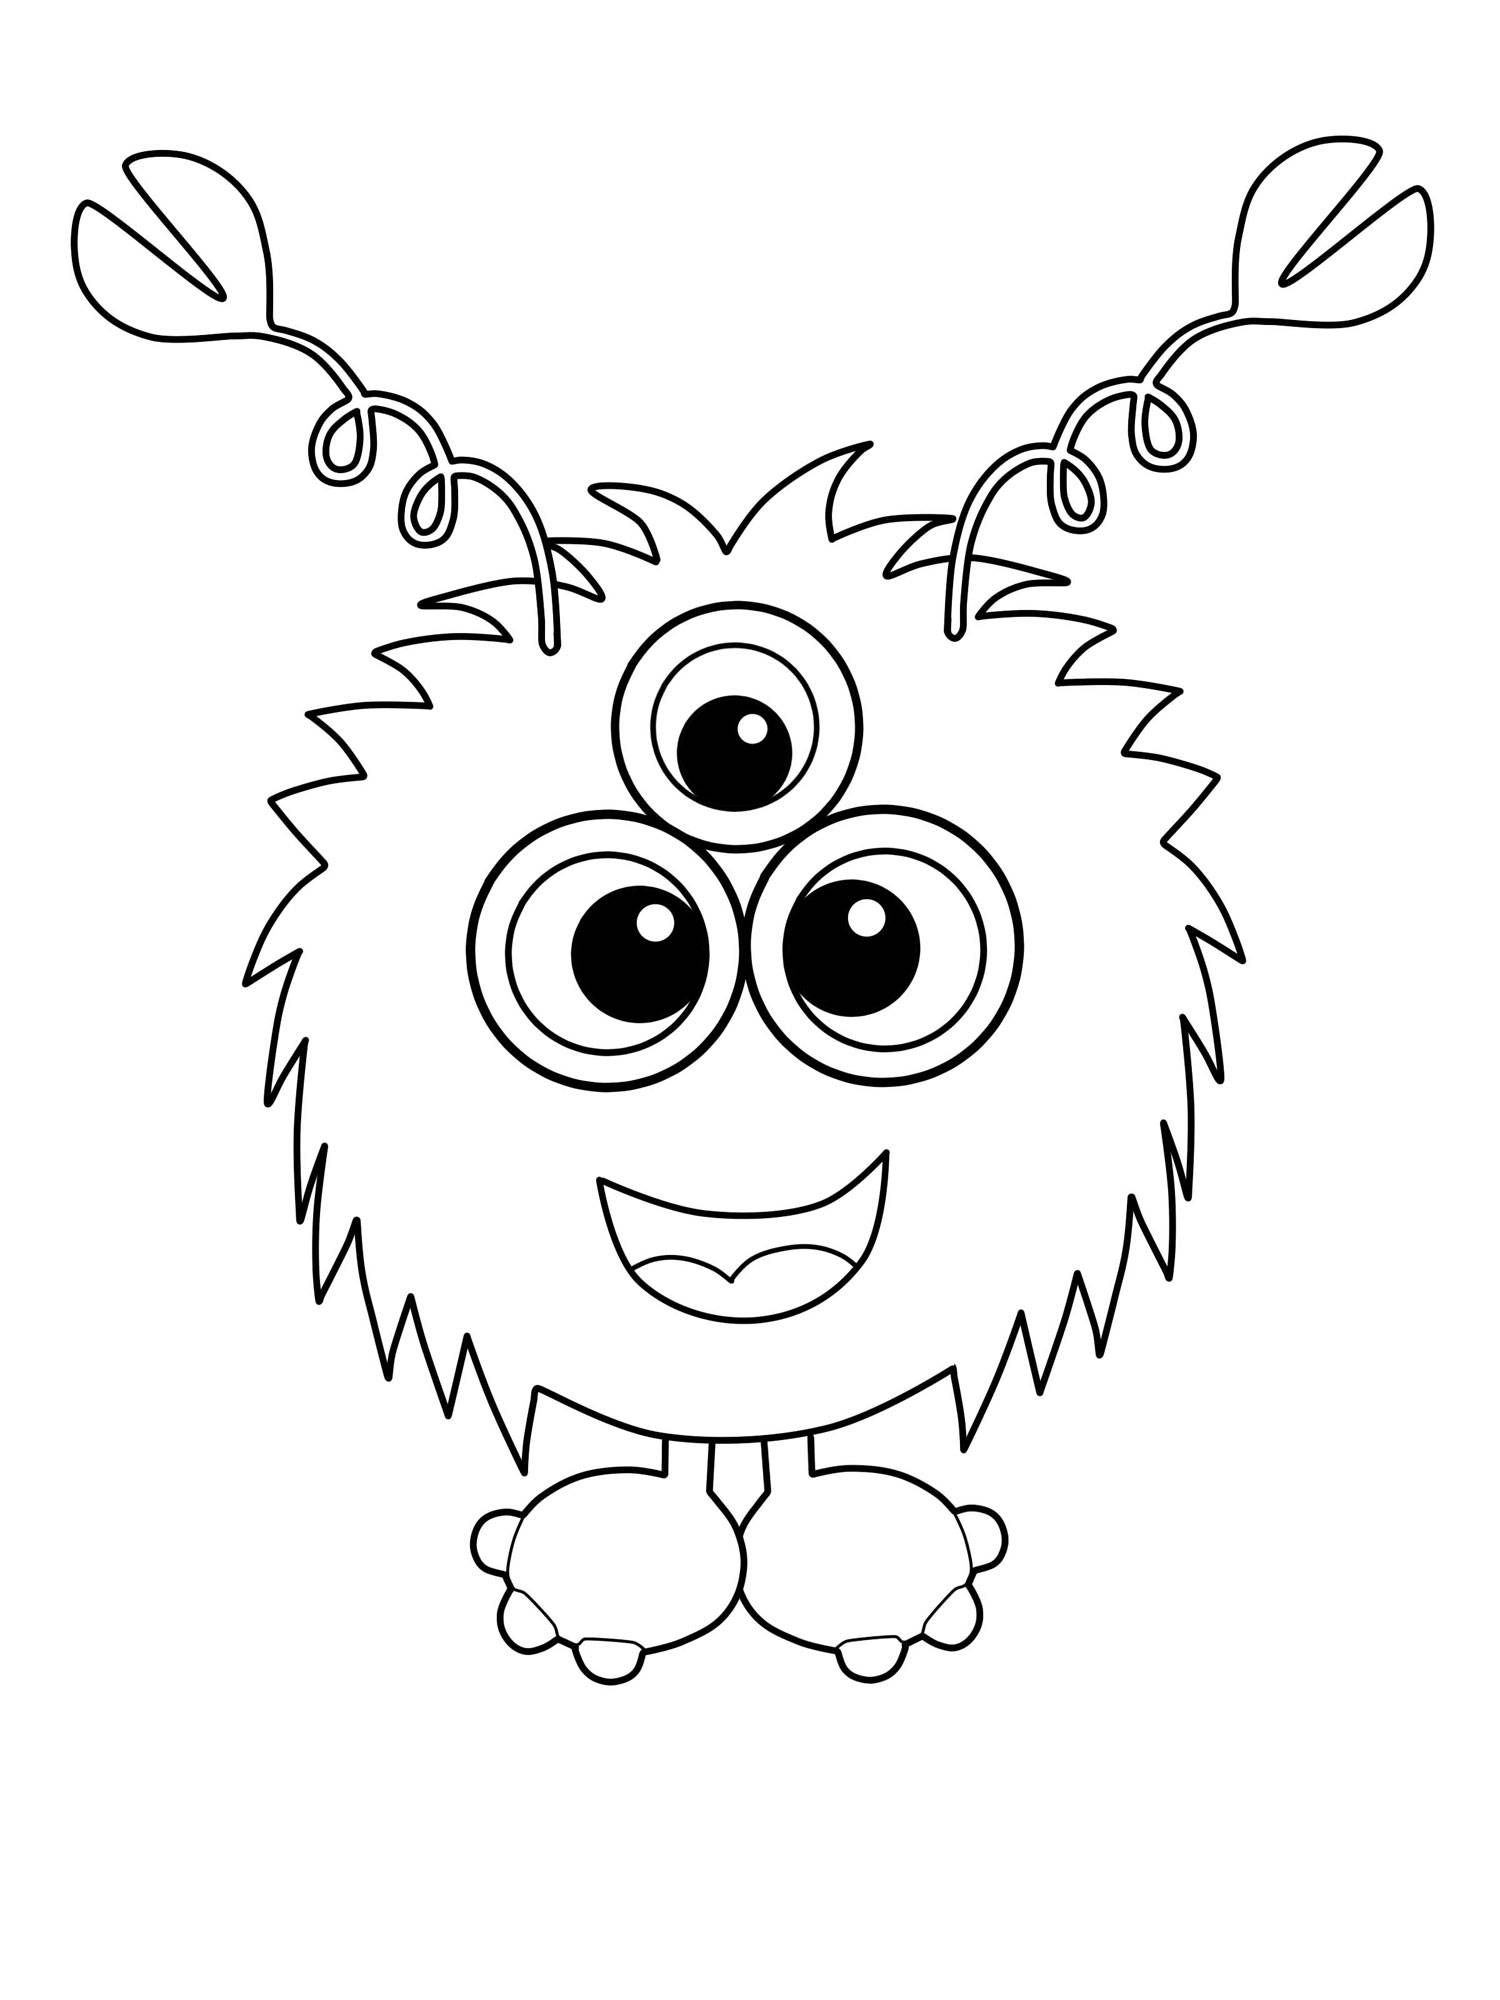 Monster Malvorlagen Kostenlos Http Www Ausmalbilder Co Monster Malvorlagen Kostenlos Monster Coloring Pages Monster Drawing Coloring Books